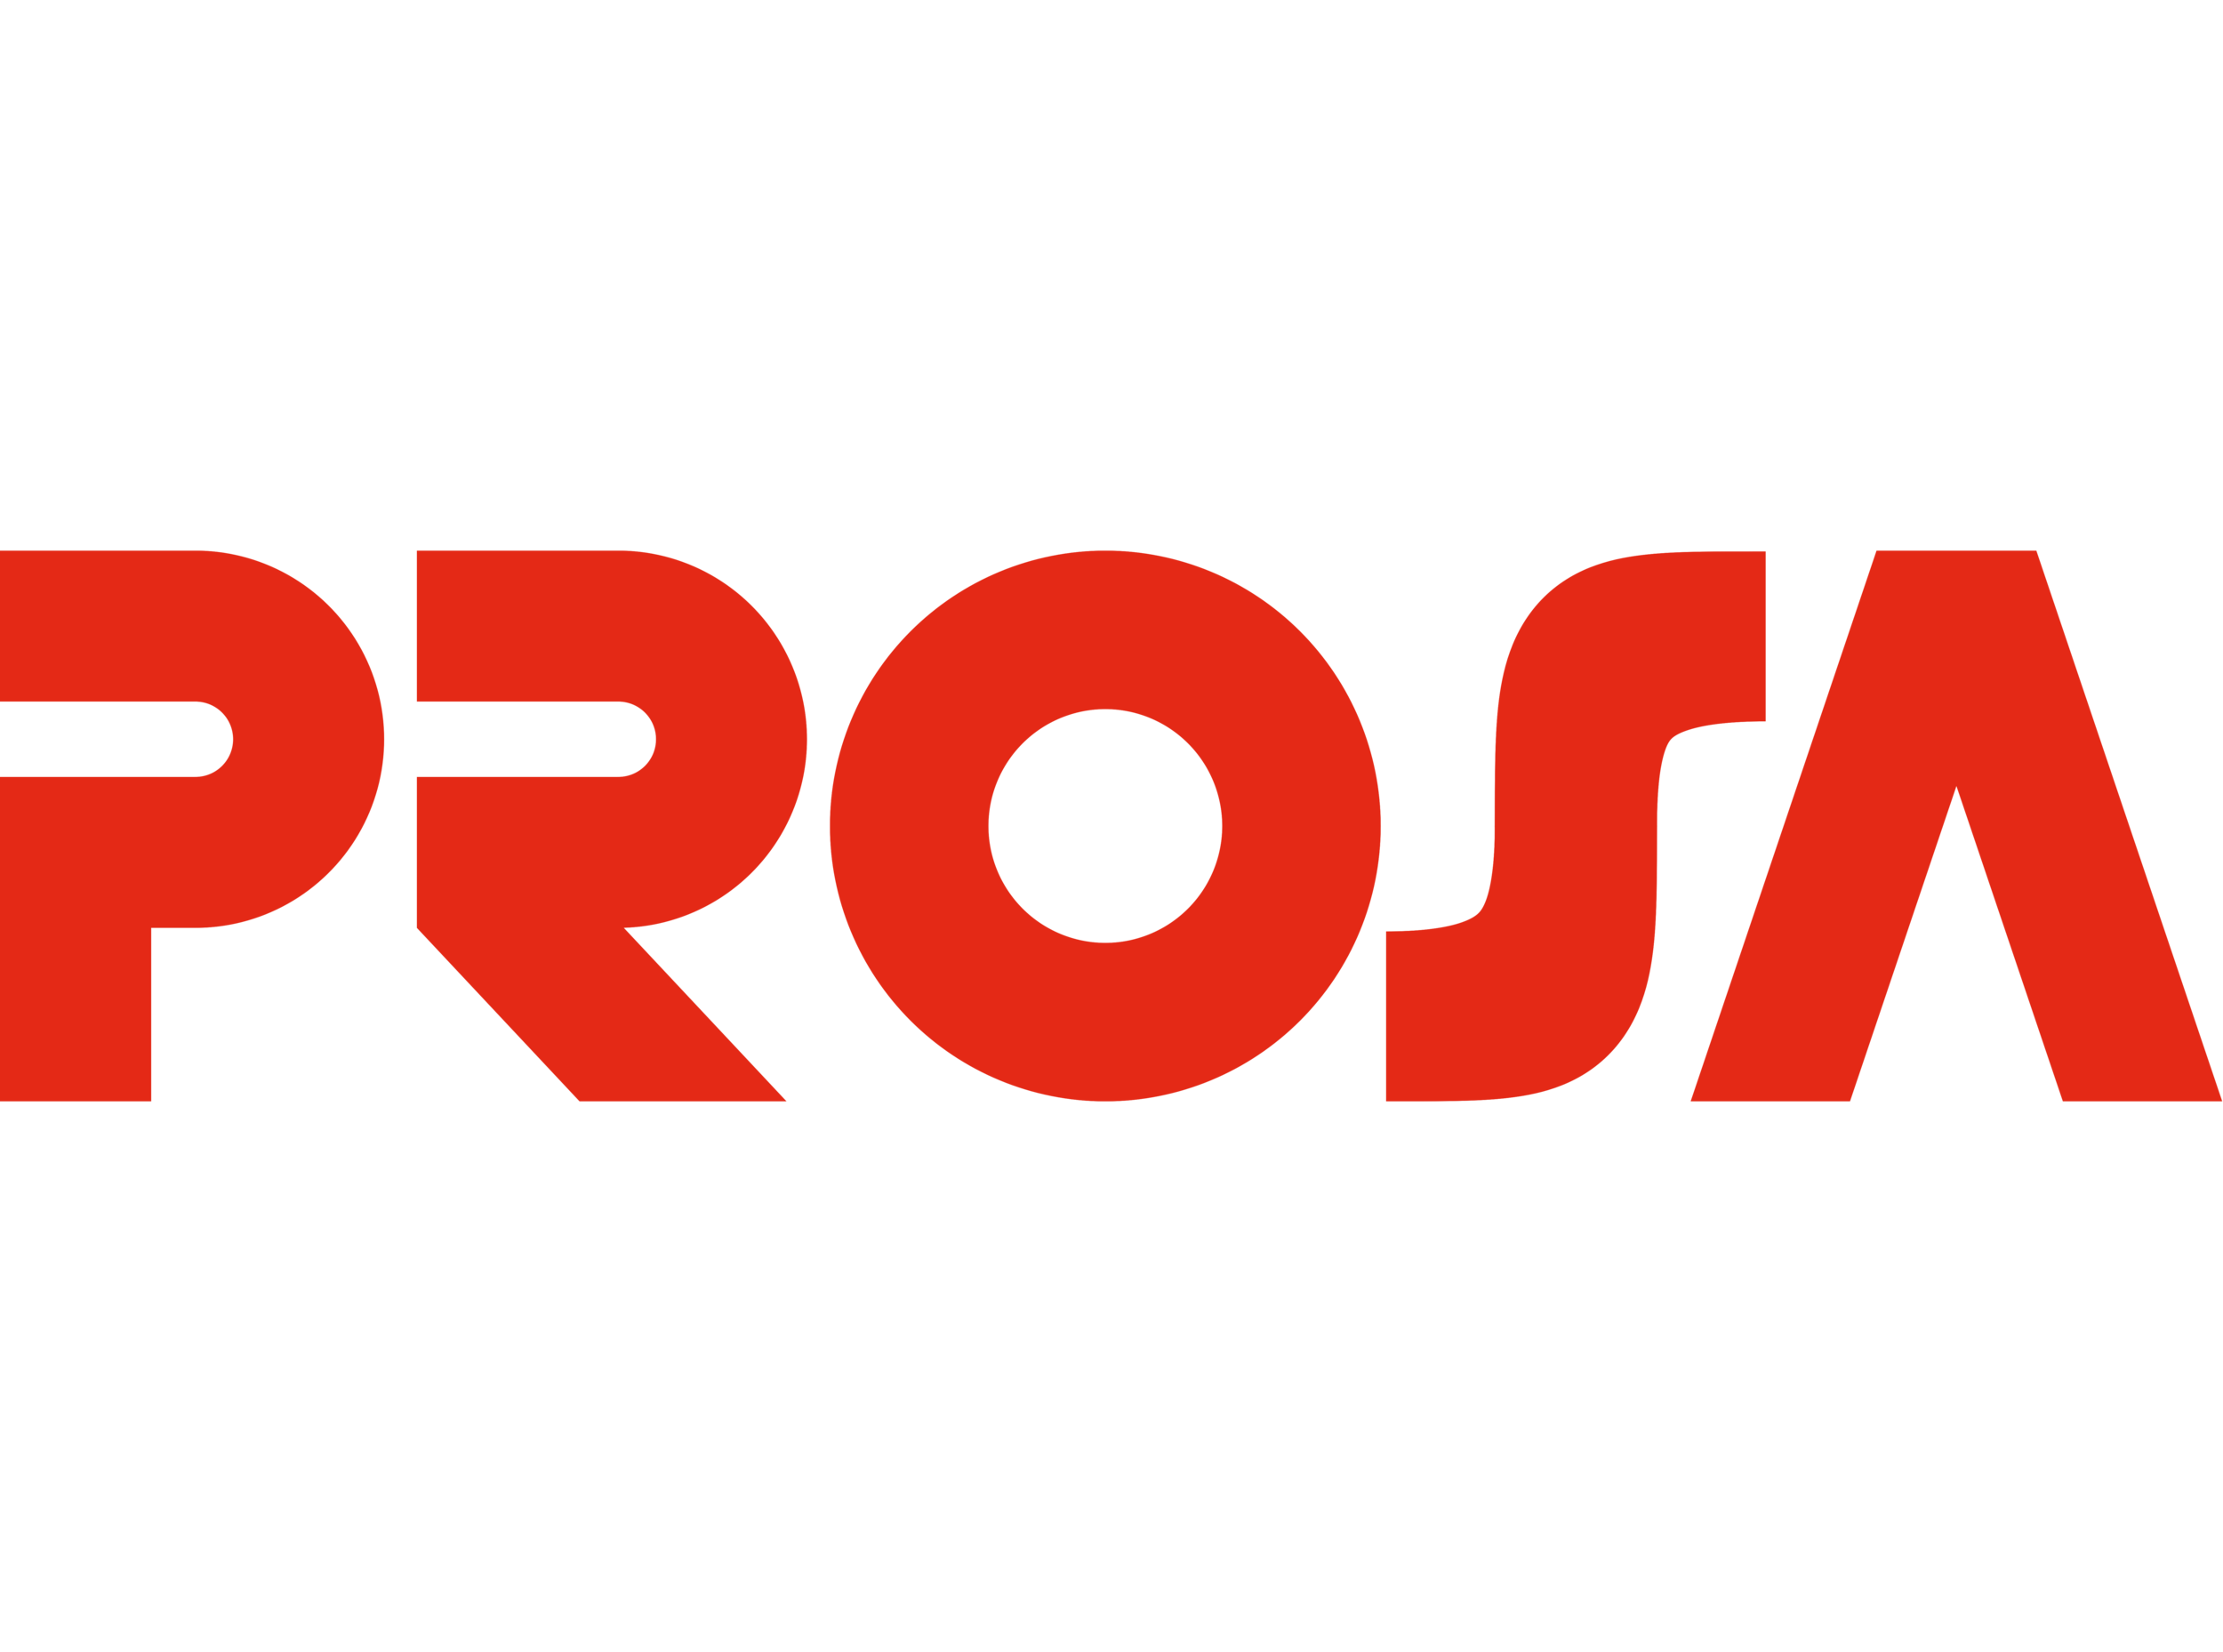 prosa-red.png